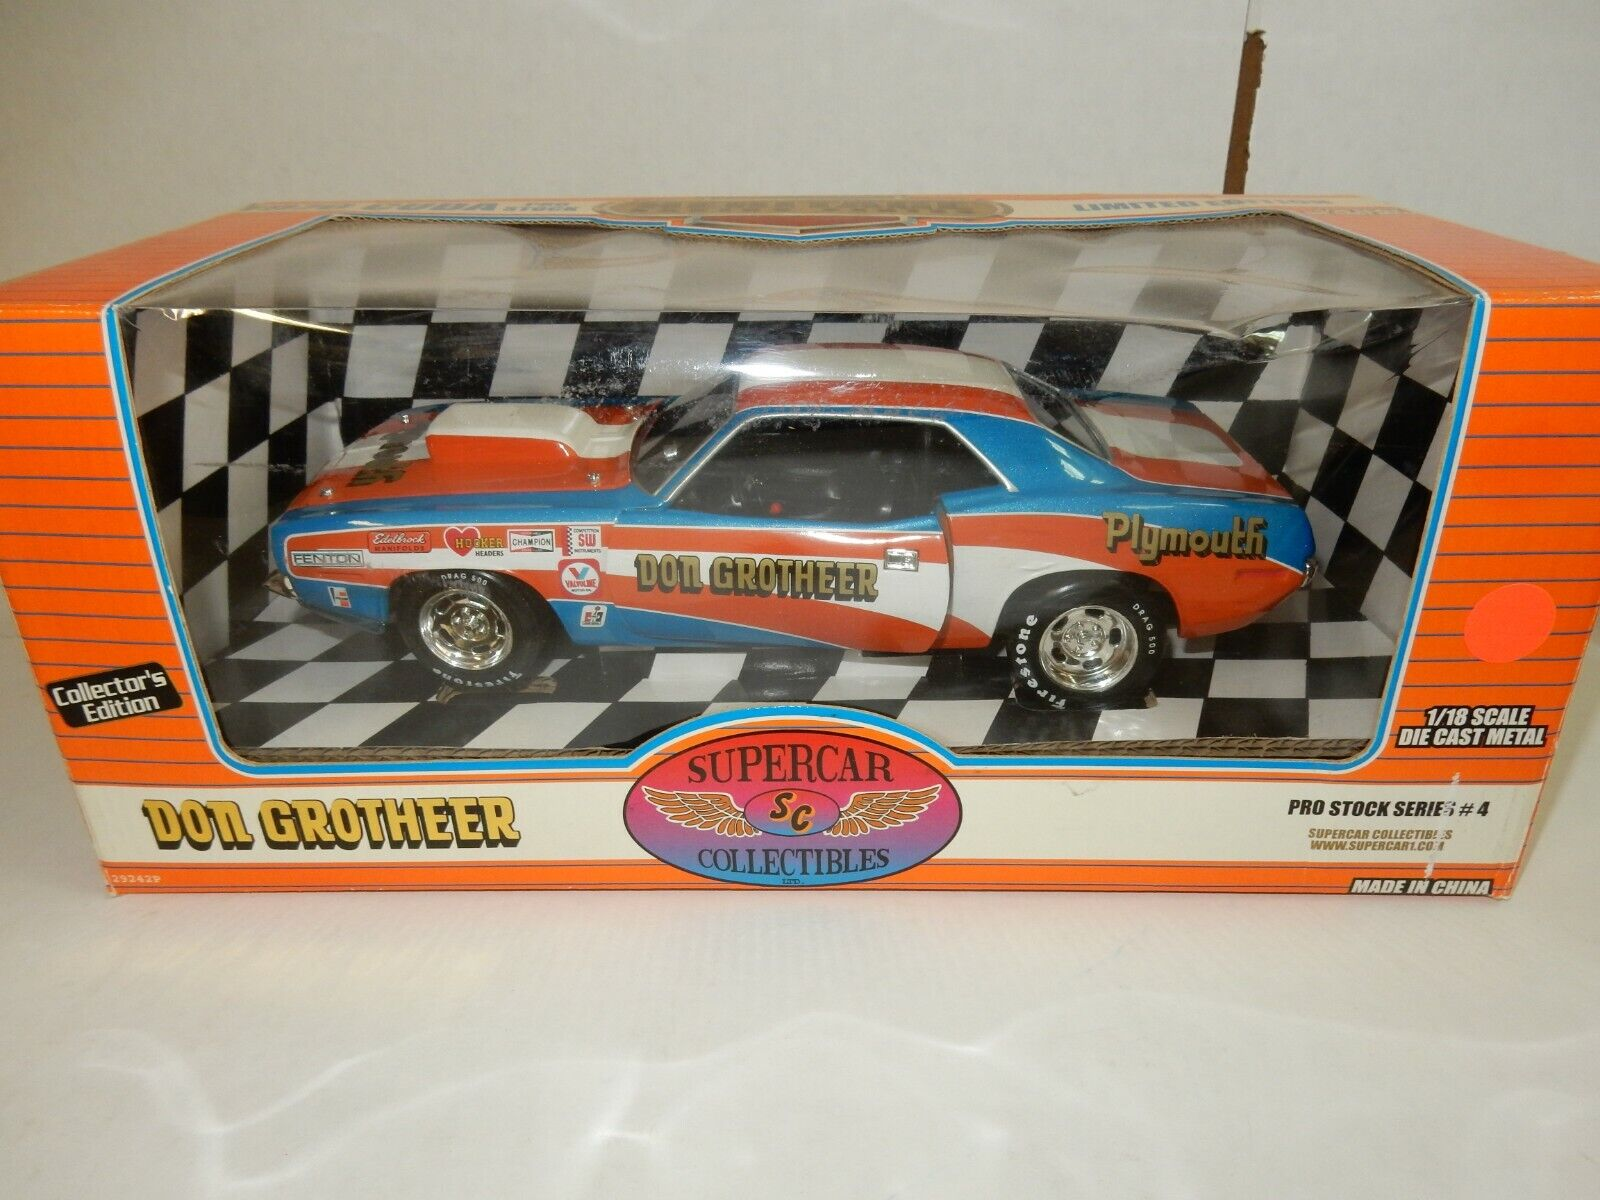 DON GROTHEER PLYMOUTH RACE CAR  SUPERCAR MODELS 1.18 DIECAST